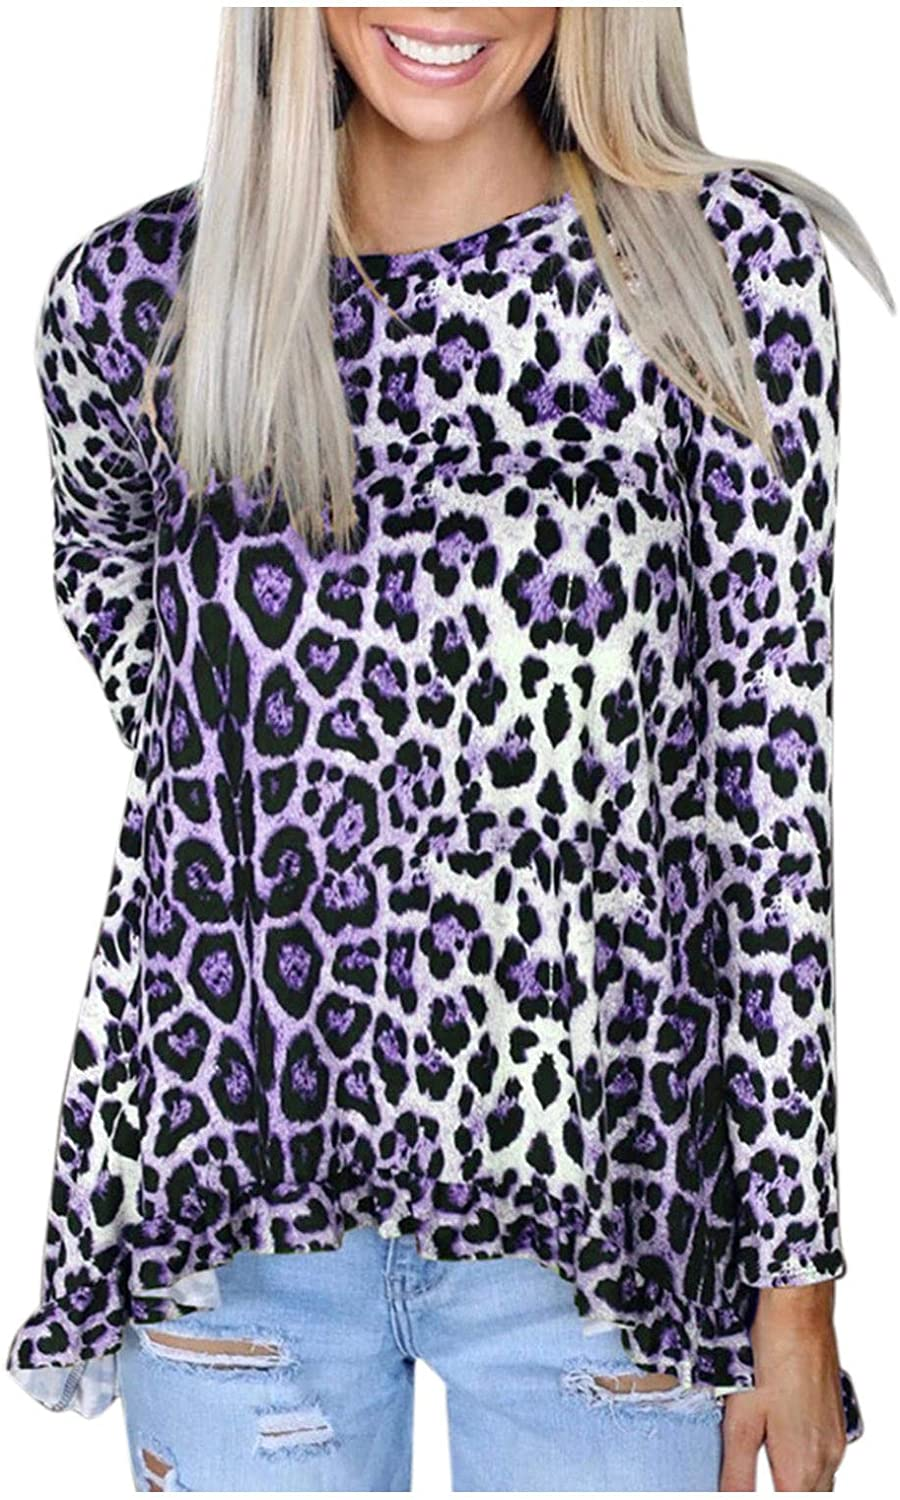 ameIAEA Women's Leopard Print Long Sleeve Turtleneck Round Neck Super beauty 2021new shipping free shipping product restock quality top